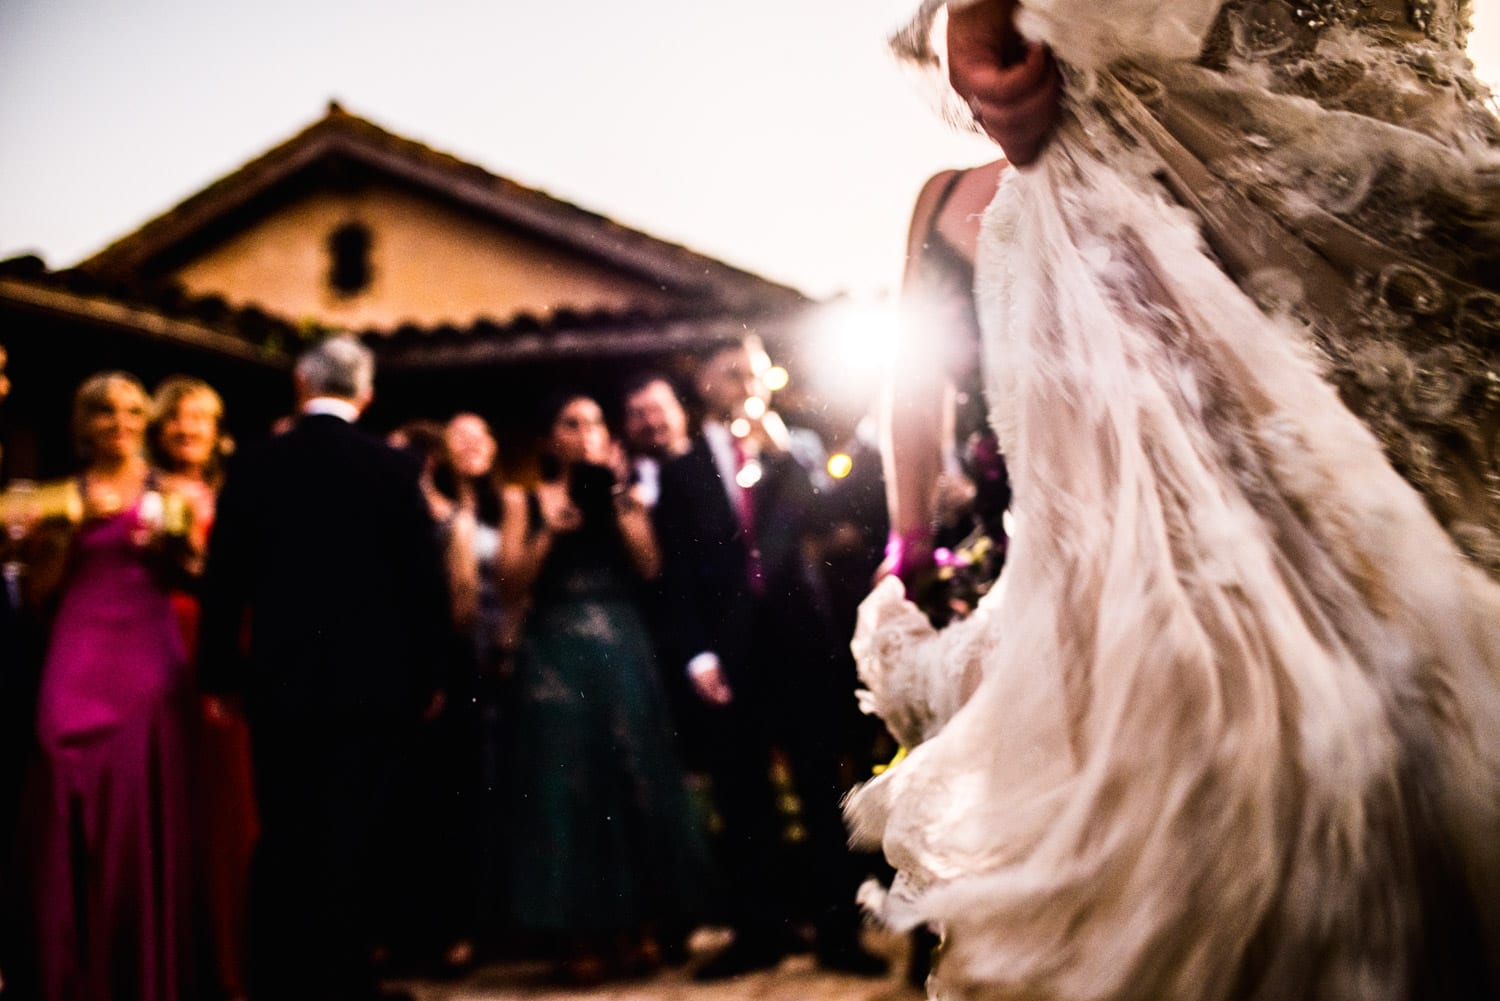 Wedding dress motion blur with LED lighting